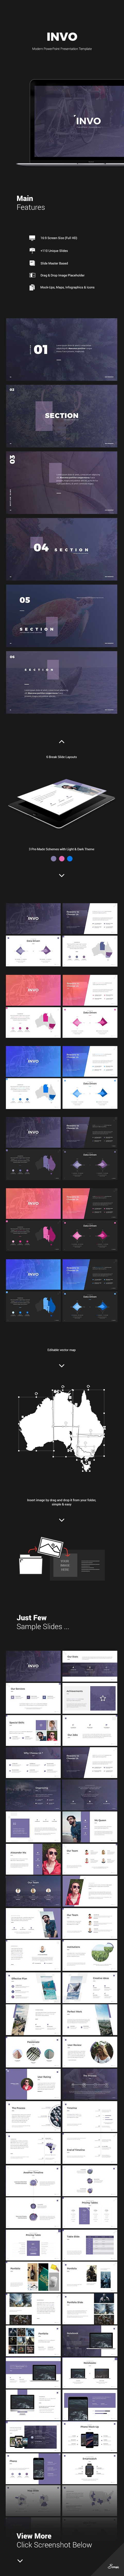 Invo Modern PowerPoint Template — Powerpoint PPTX #powerpoint template #company • Download ➝ https://graphicriver.net/item/invo-modern-powerpoint-template/18856562?ref=pxcr